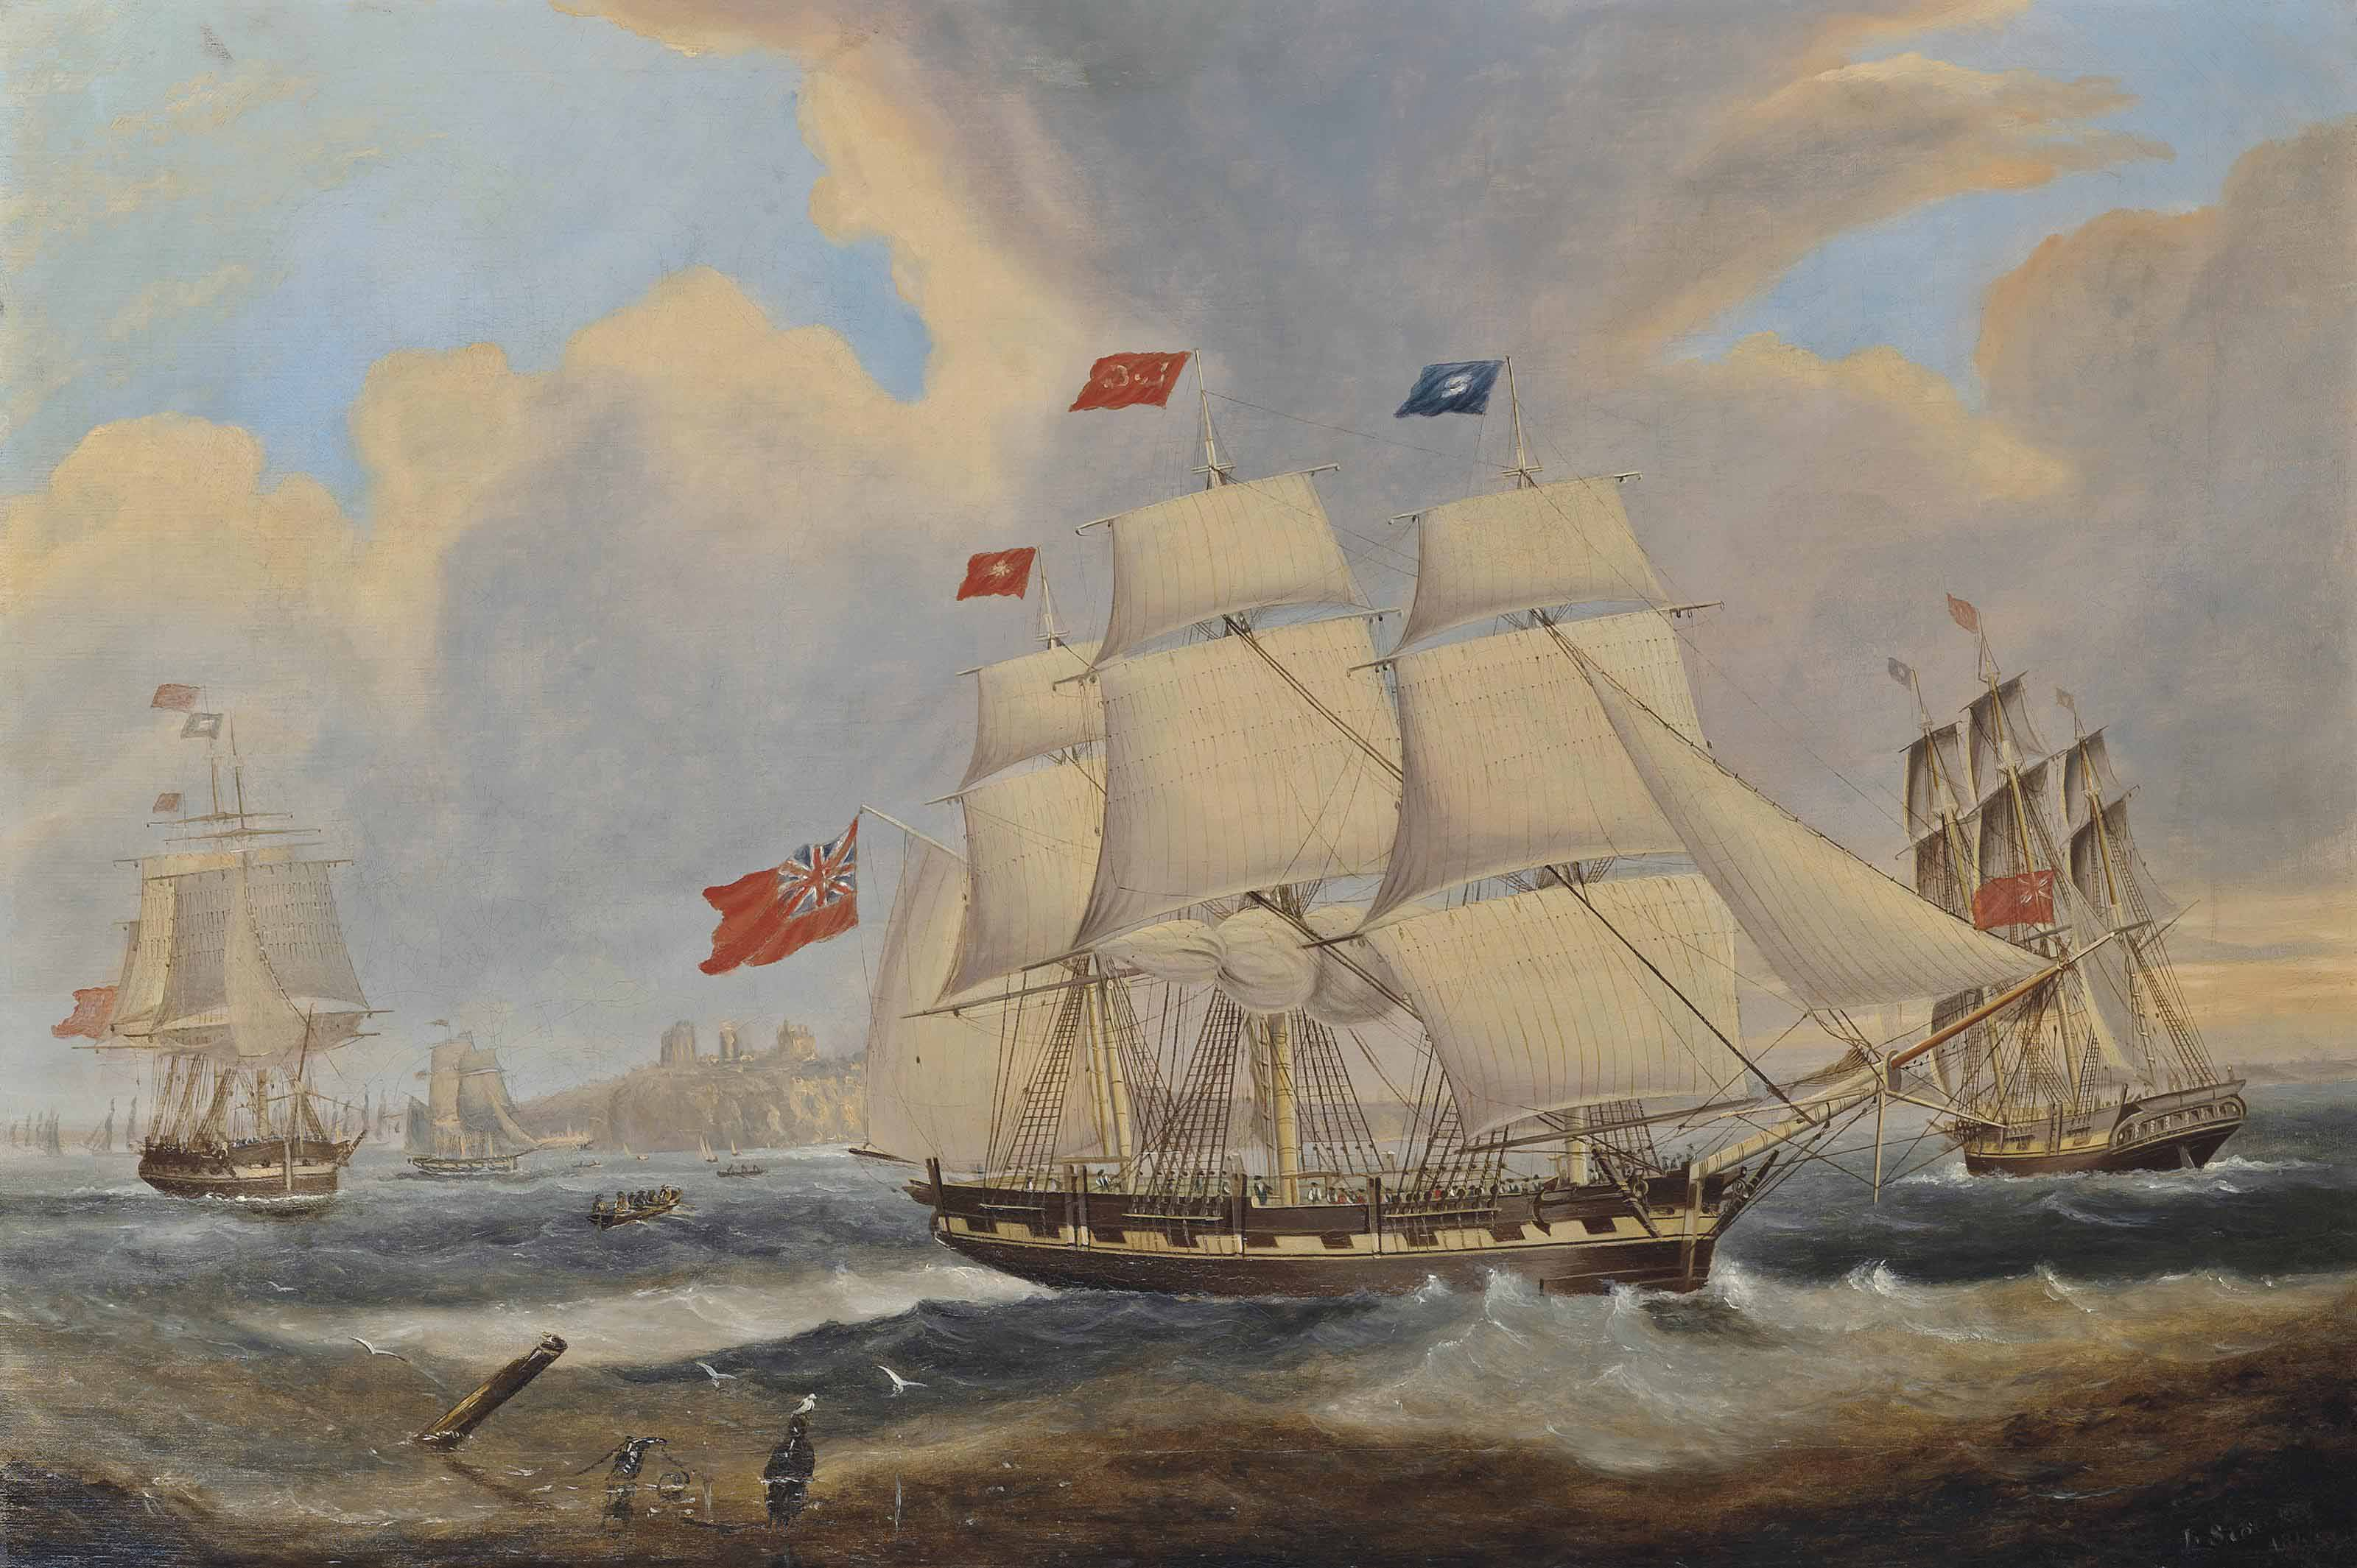 A merchantman, in three positions, at the the mouth of the Tyne